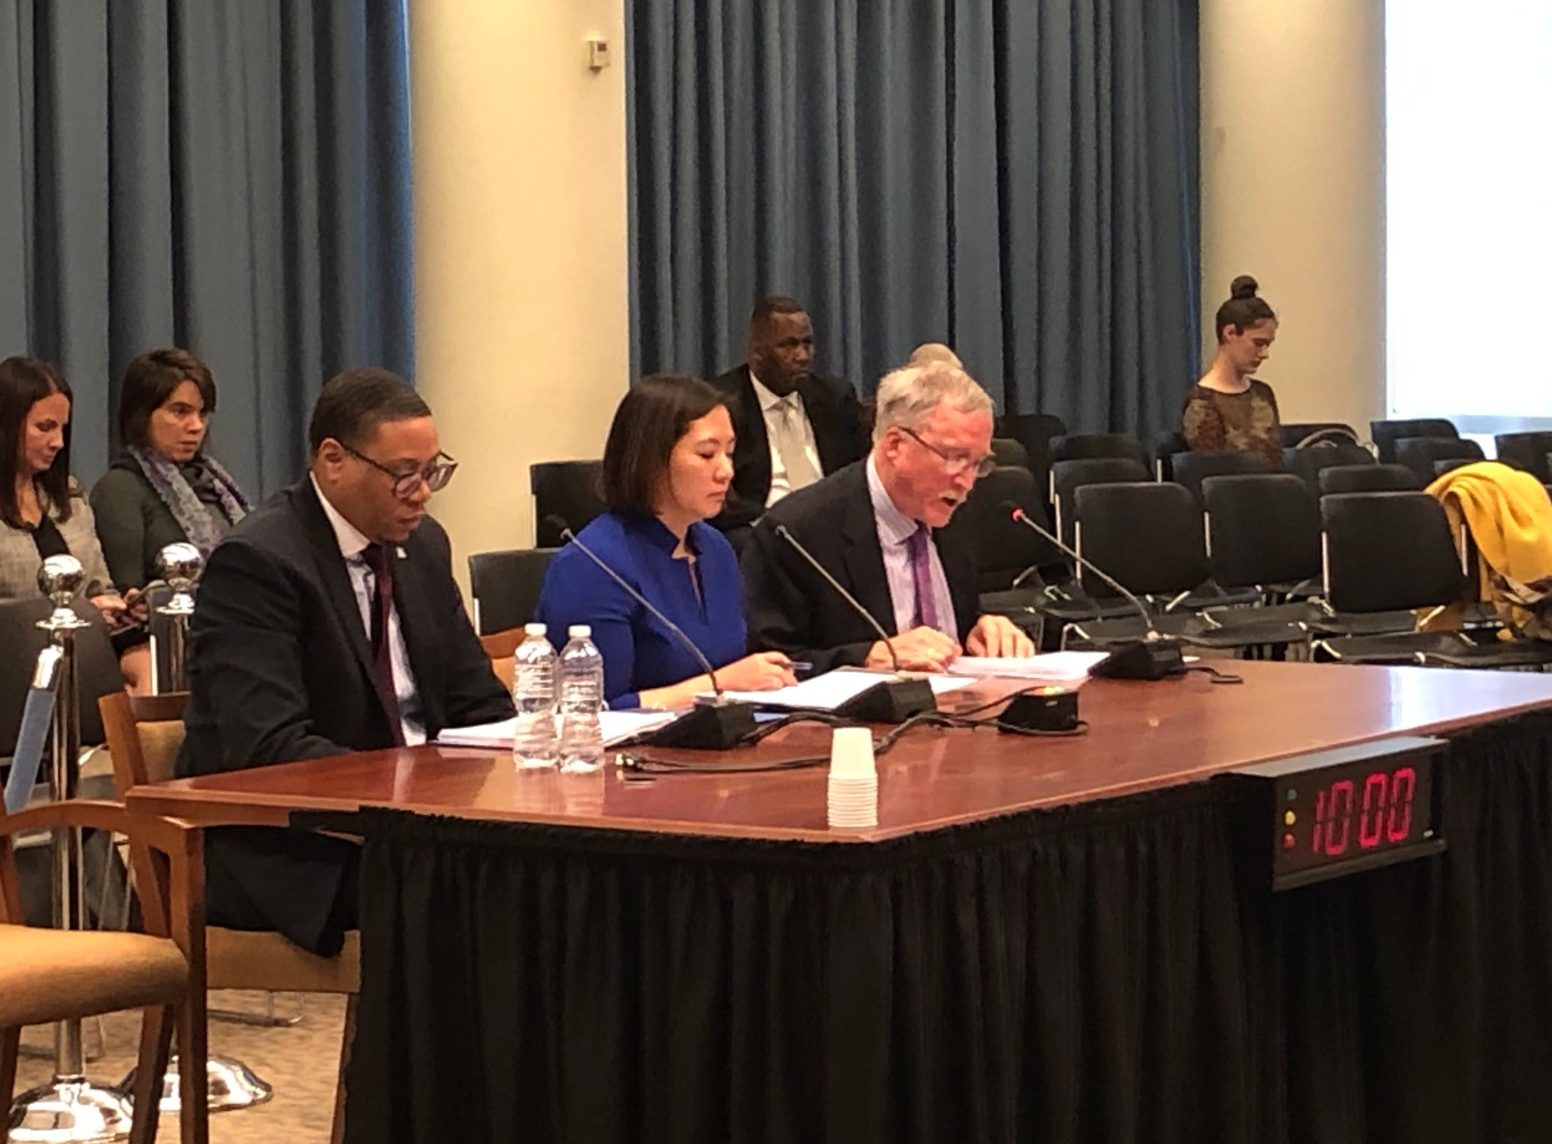 Ward 4 Representative, Frazier O'Leary, testifying before Council on teacher attrition. He is seated at a table, speaking into a microphone, and is seated next to state superintendent, Hanseul Kang, and DC public schools chancellor, Dr. Lewis Ferebee.